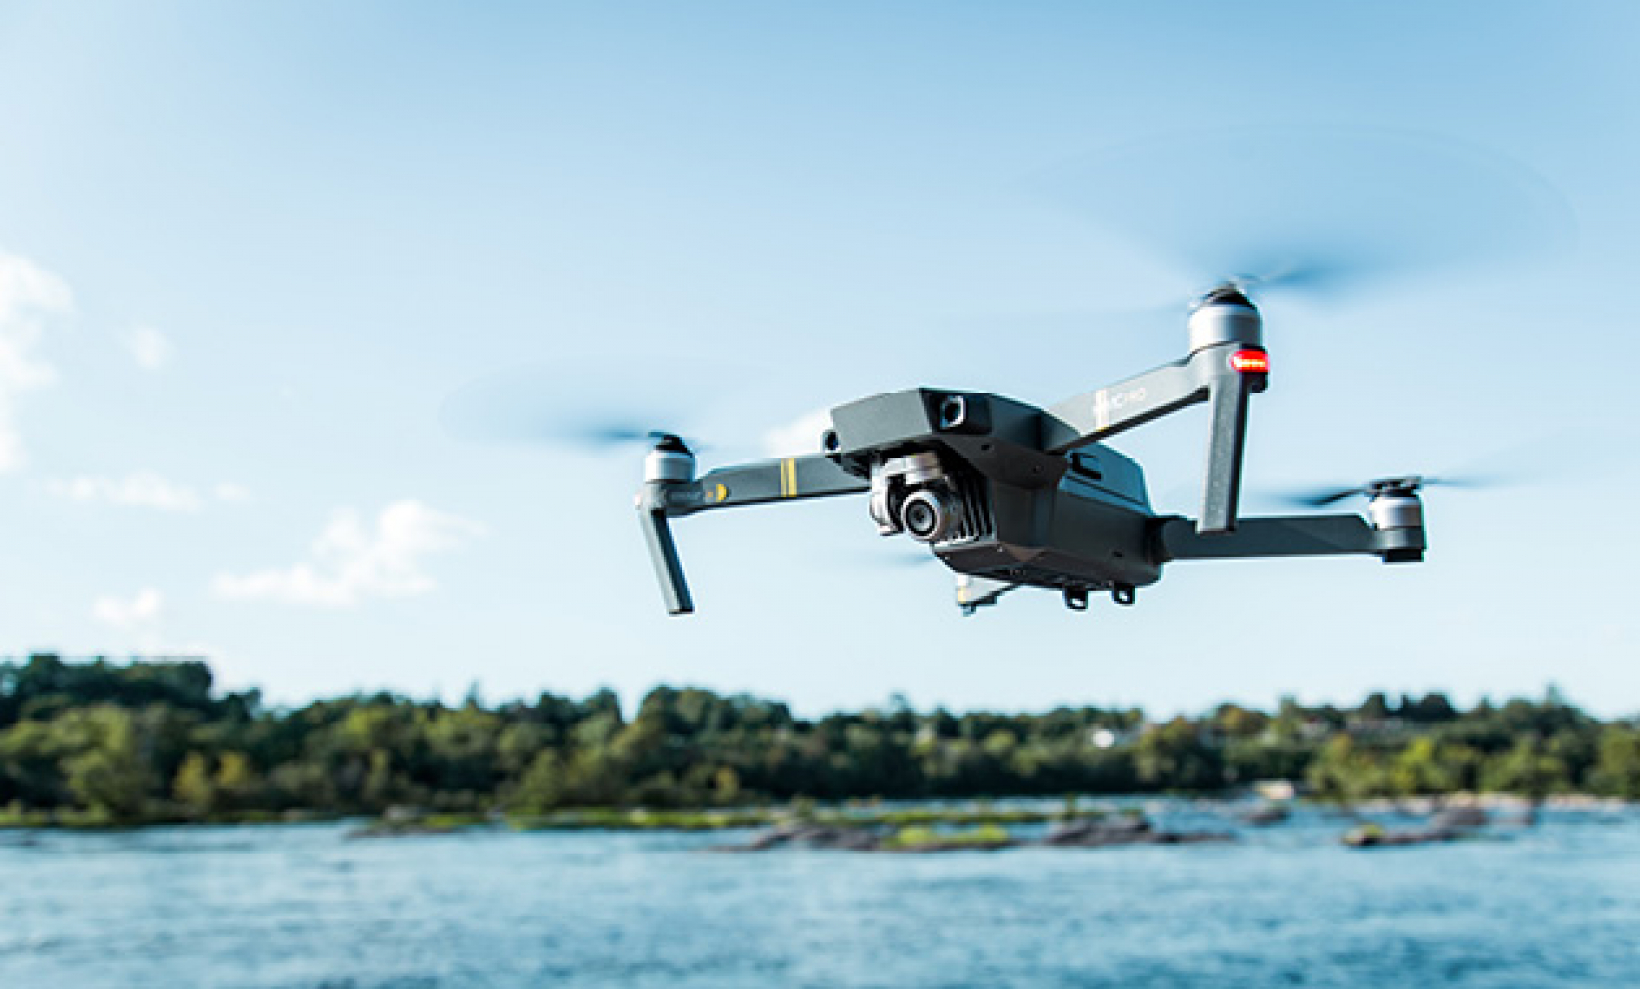 Galileo is already present in more than 30% of the receivers used for drone applications